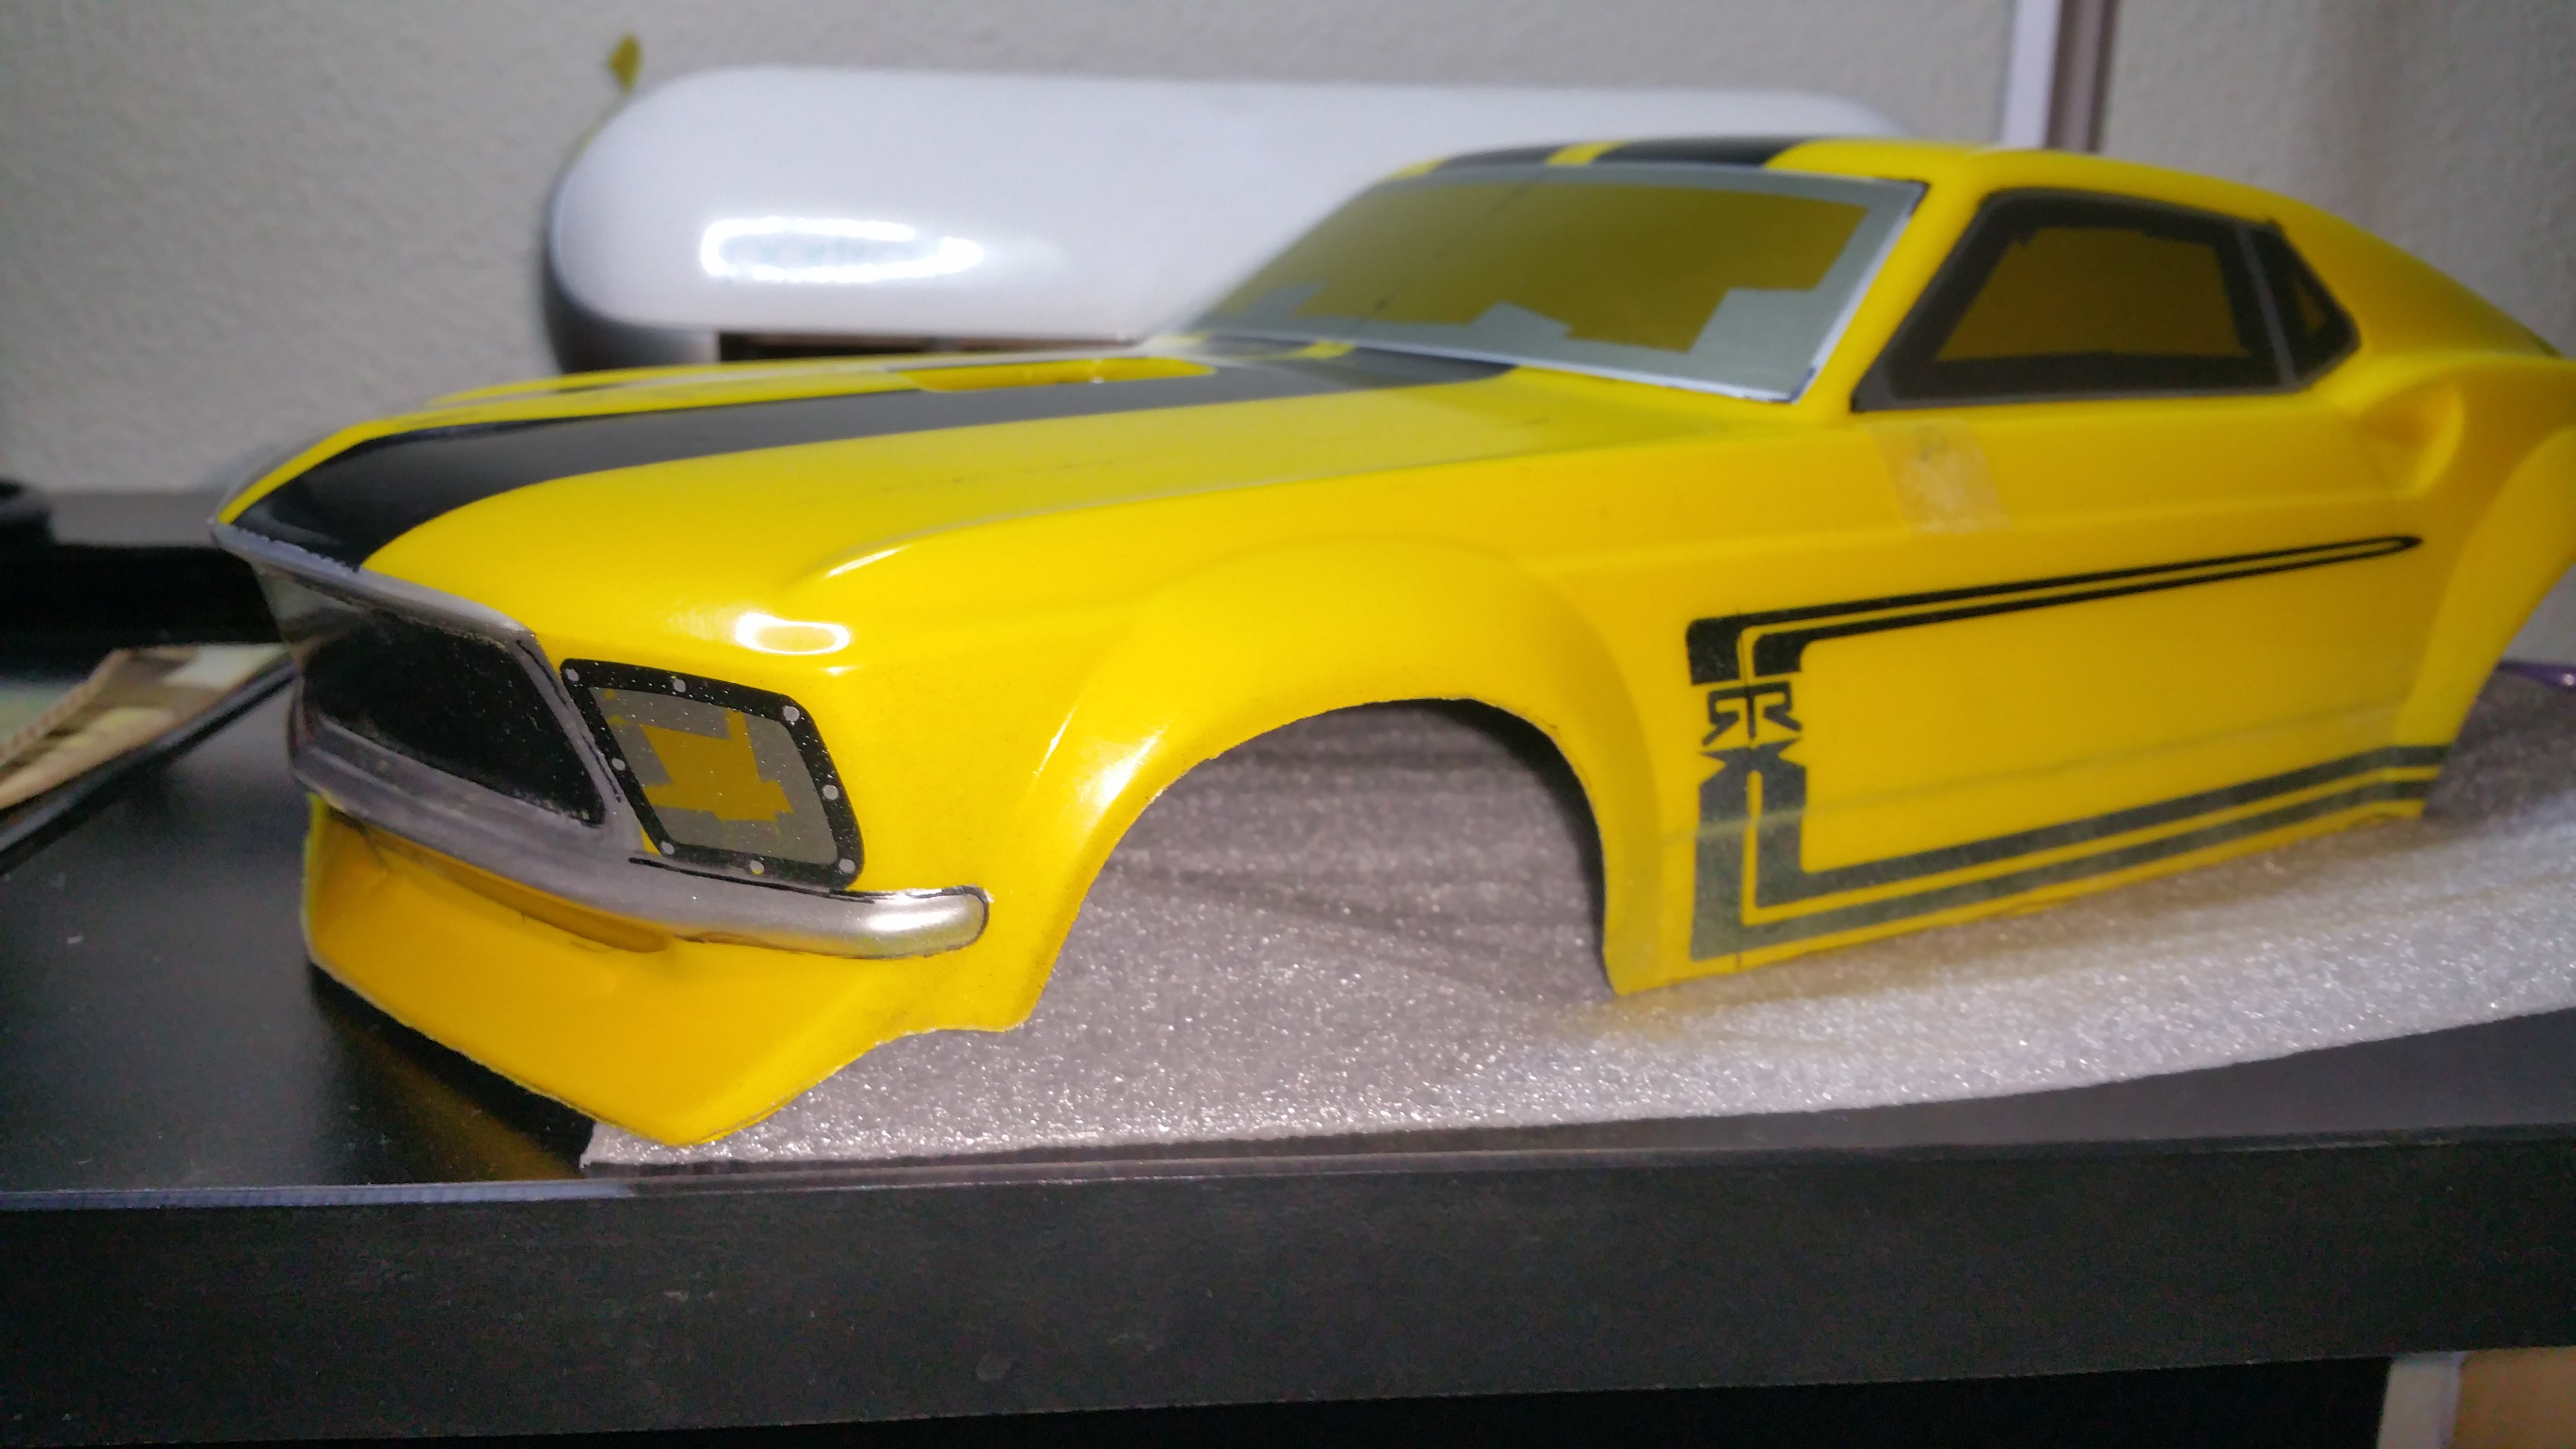 Ford Mustang 69 Boss302 version RTR-X  Wk7b